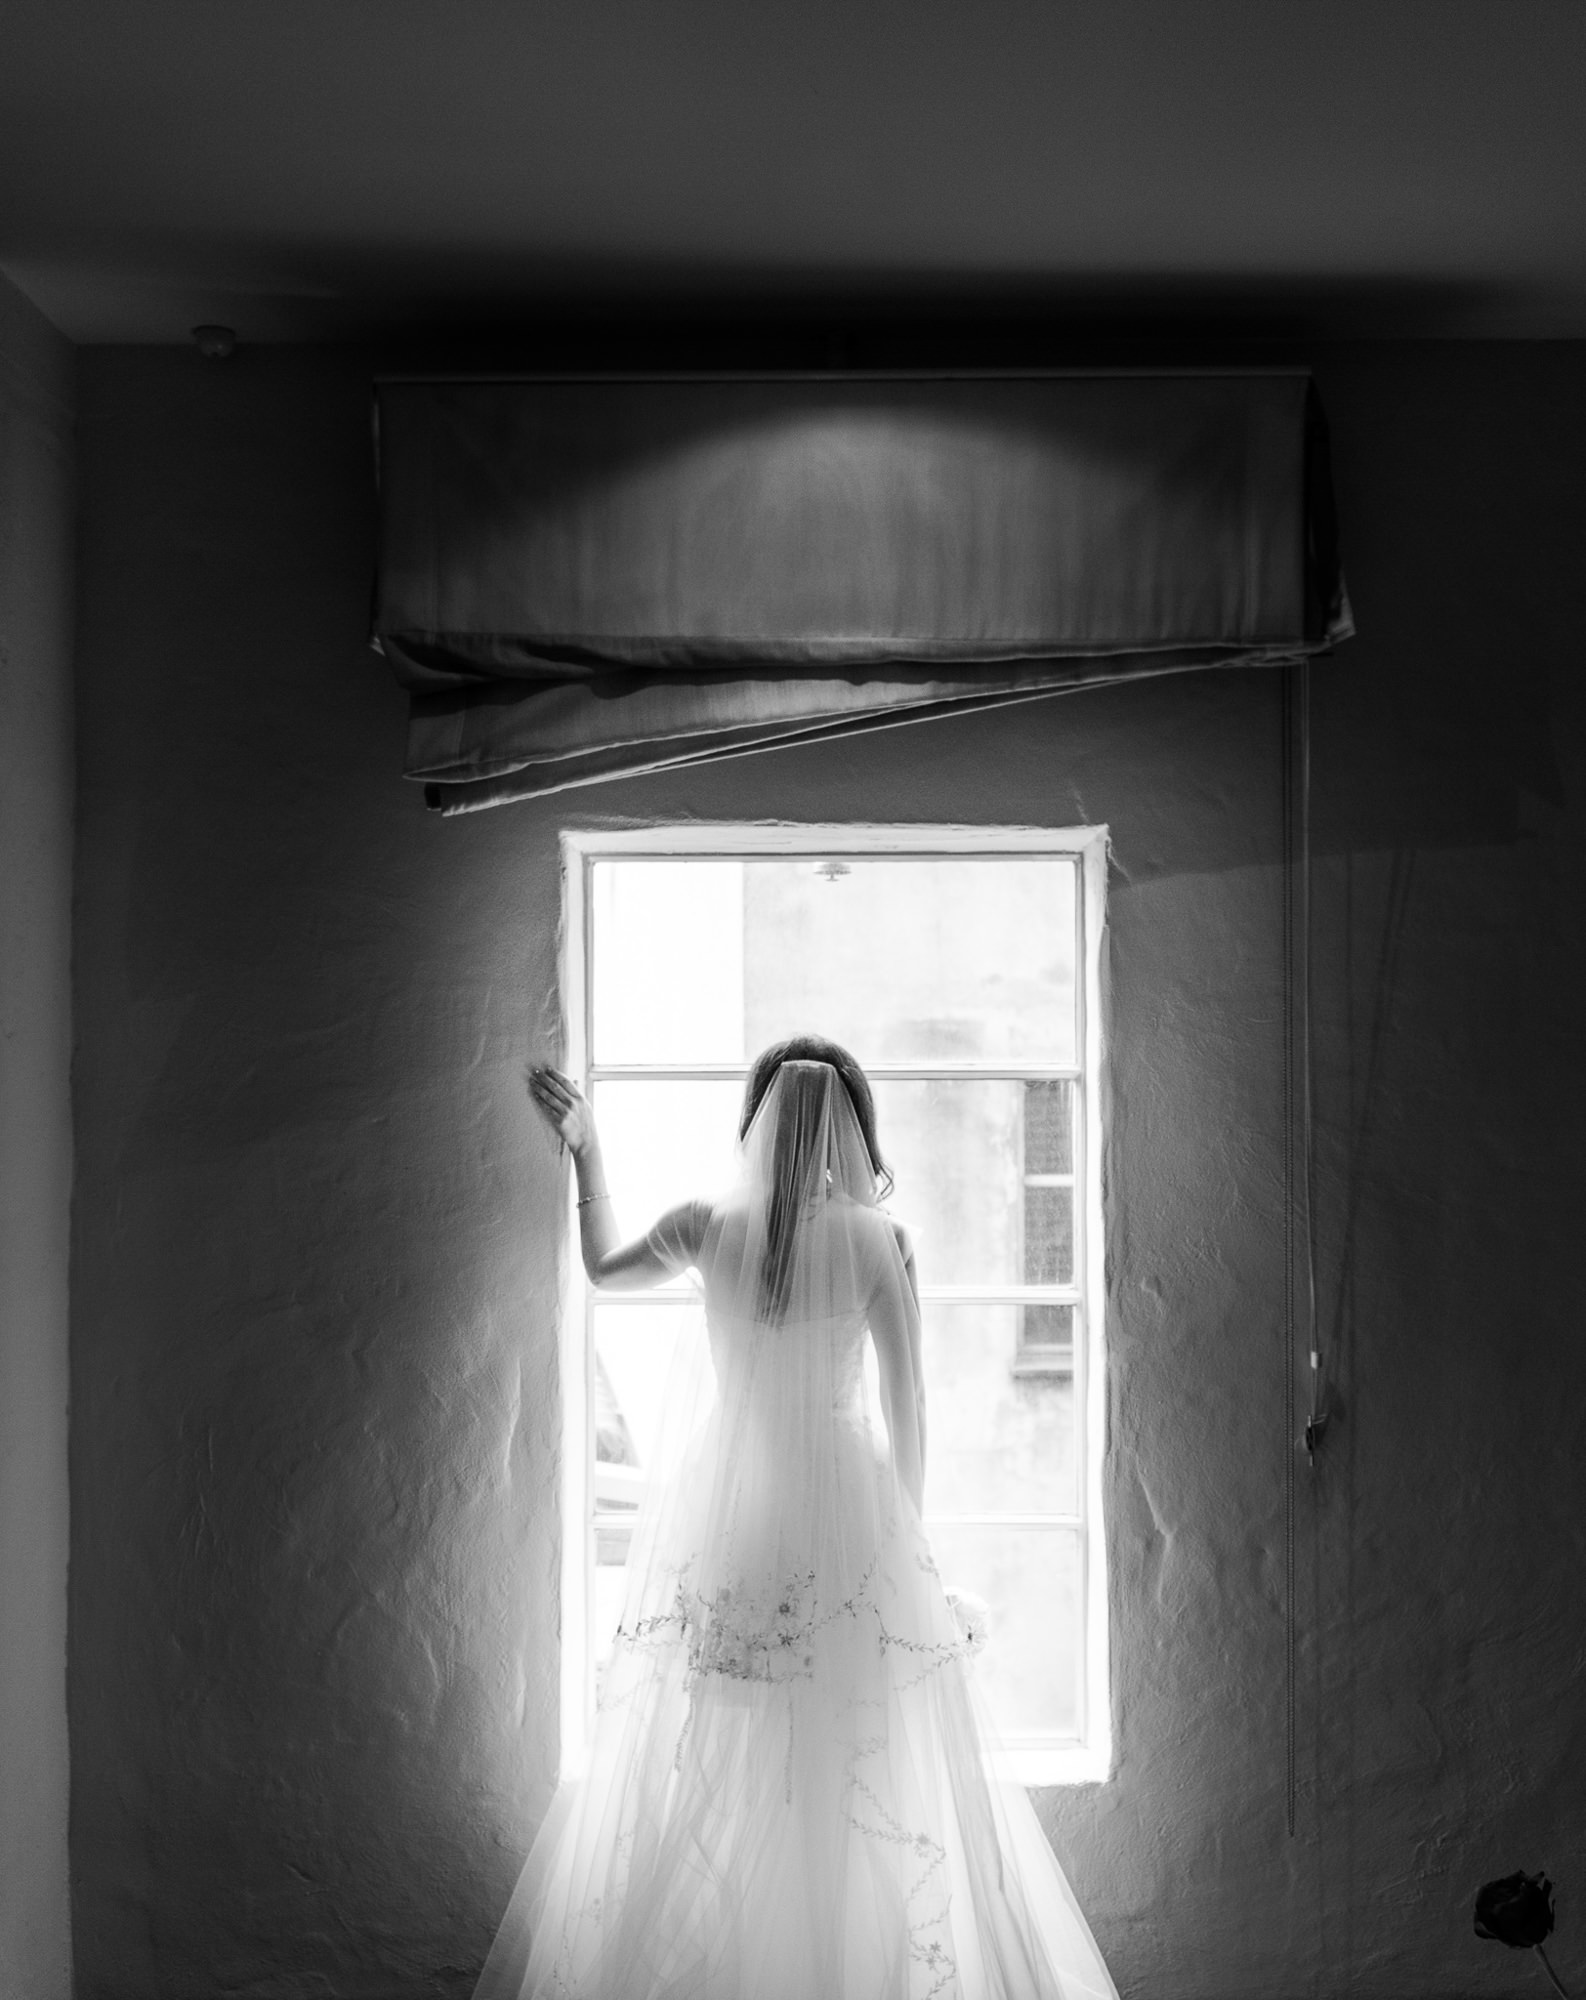 Pensive bride looking out window -  photo by Marcus Bell